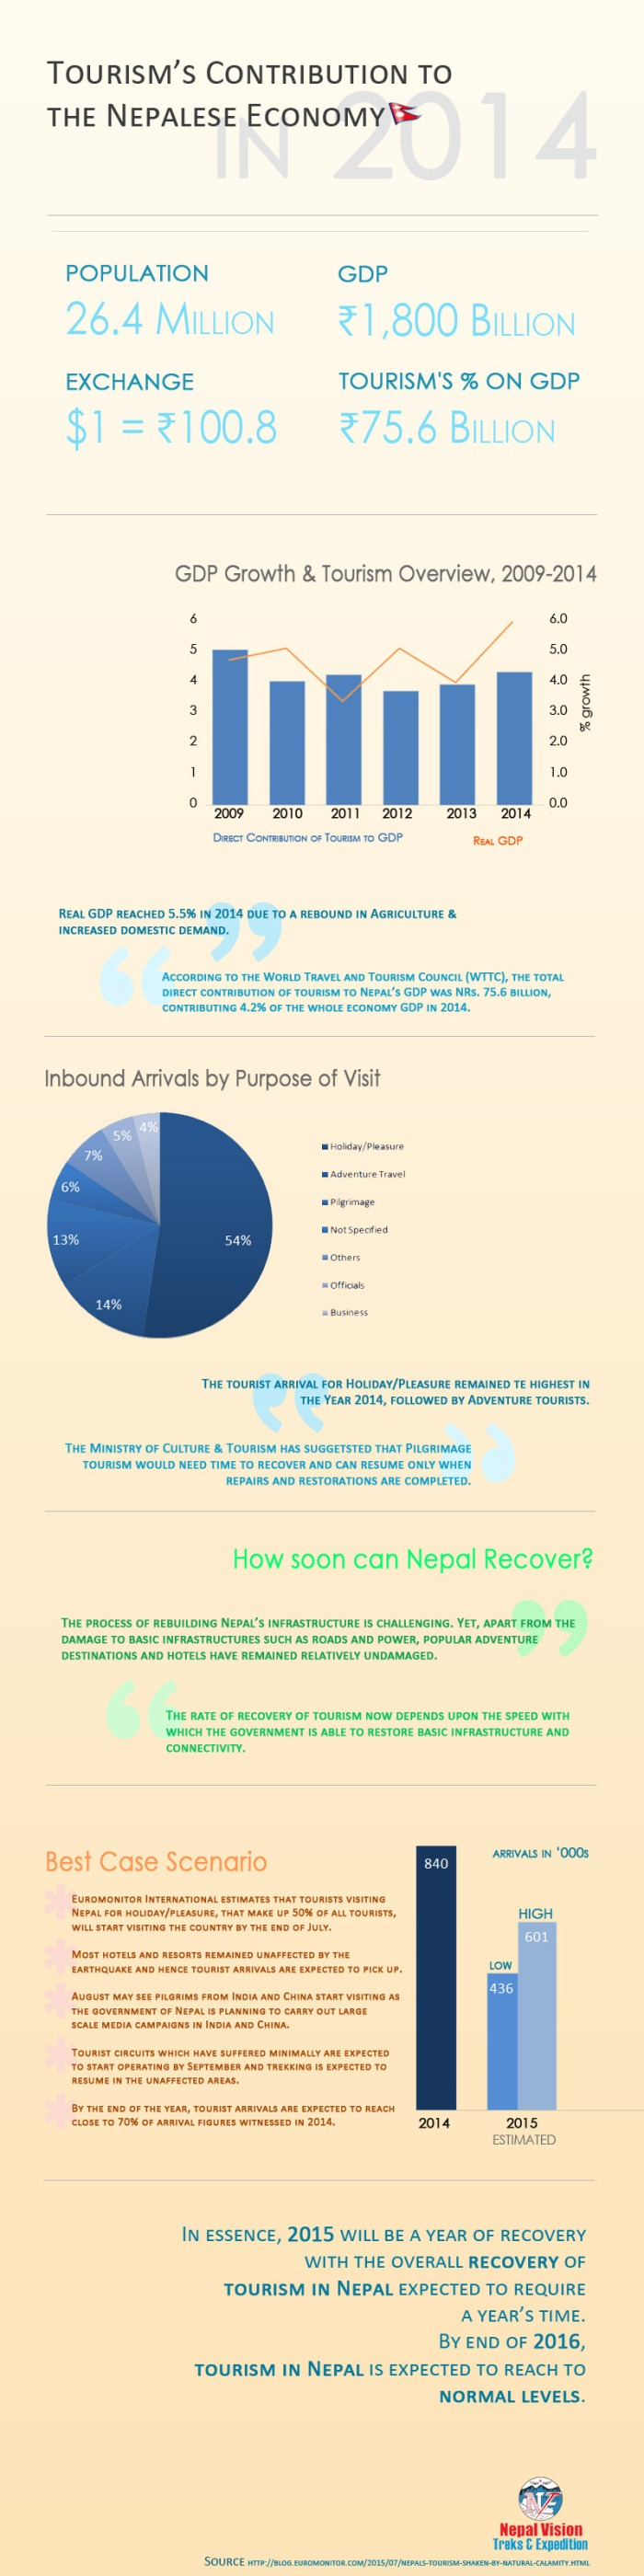 Tourism contribution to the Nepalese economy